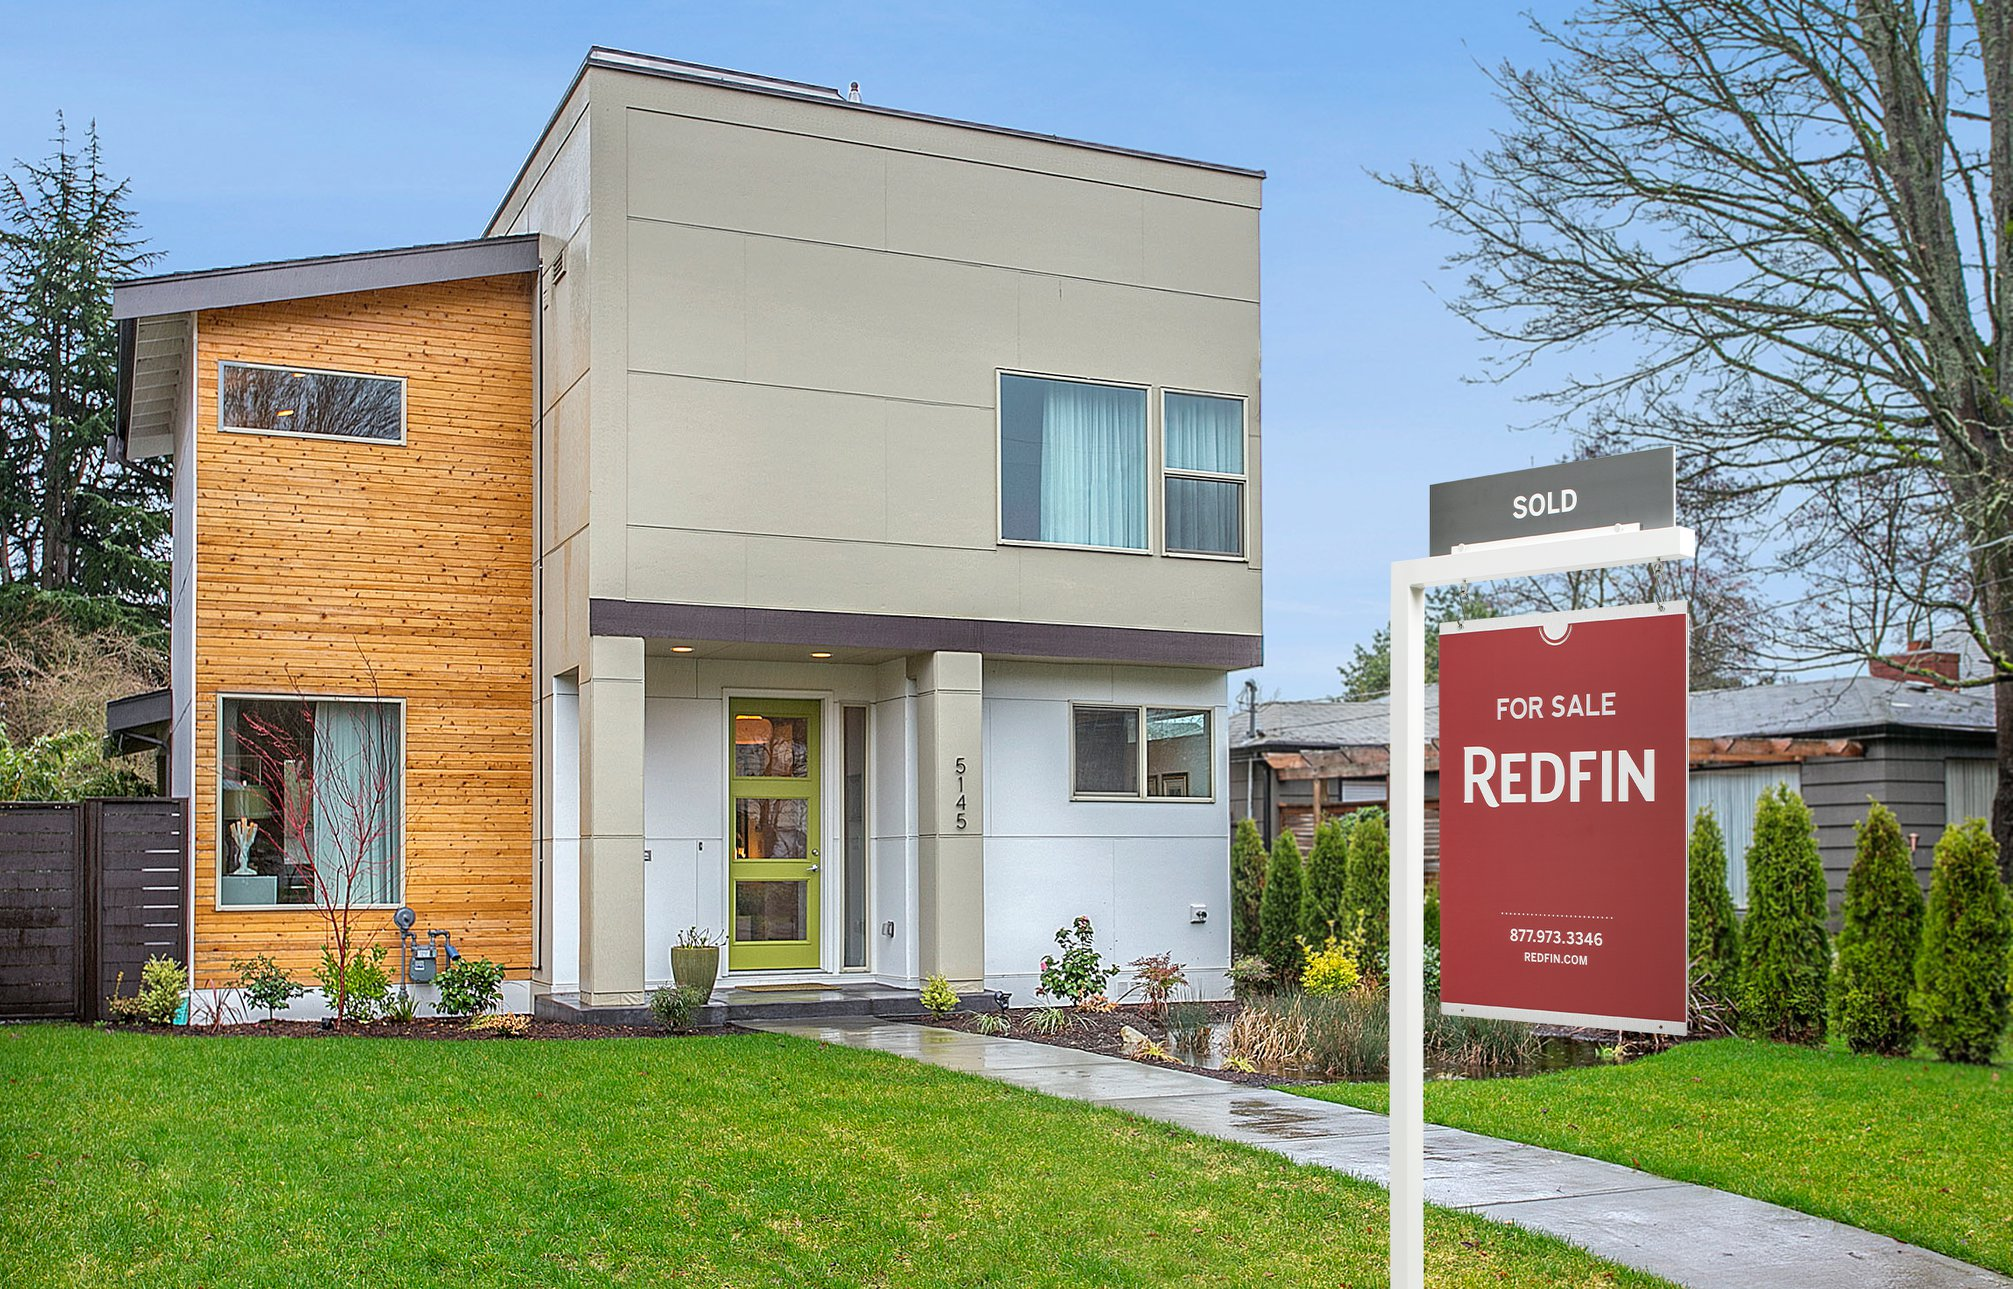 Sam Wilson Featured in Redfin Home Security Article